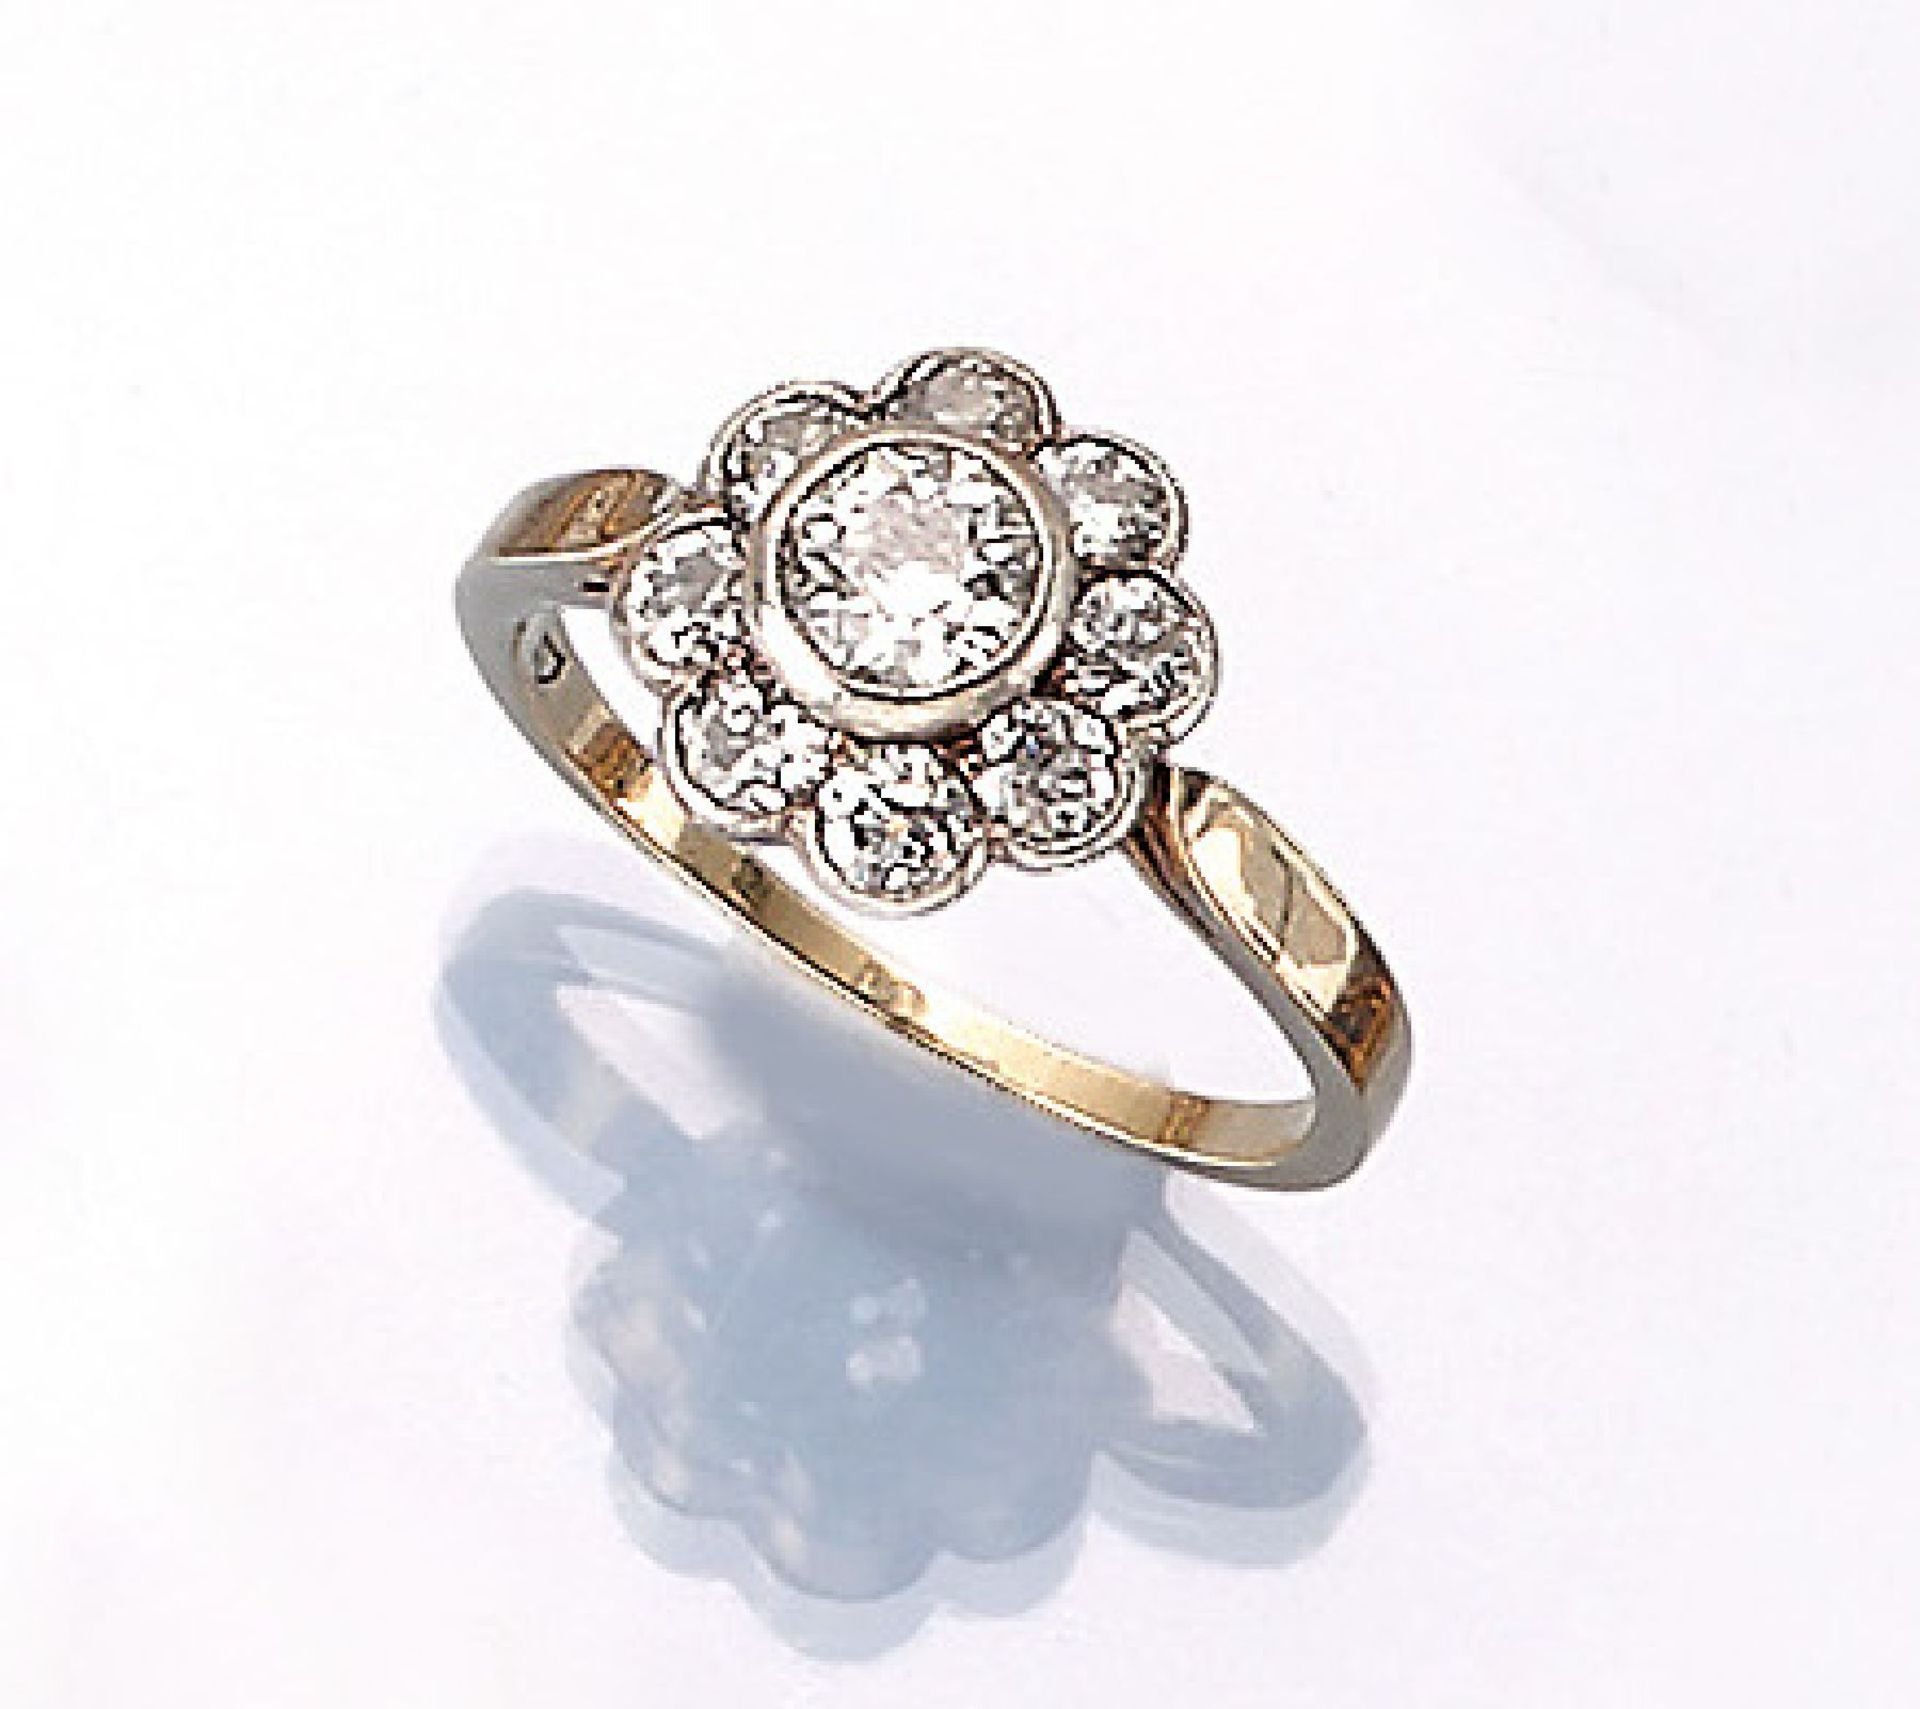 Los 61525 - 14 kt gold blossom ring with diamonds , approx. 1890, YG 585/000 and silver, centered old cut